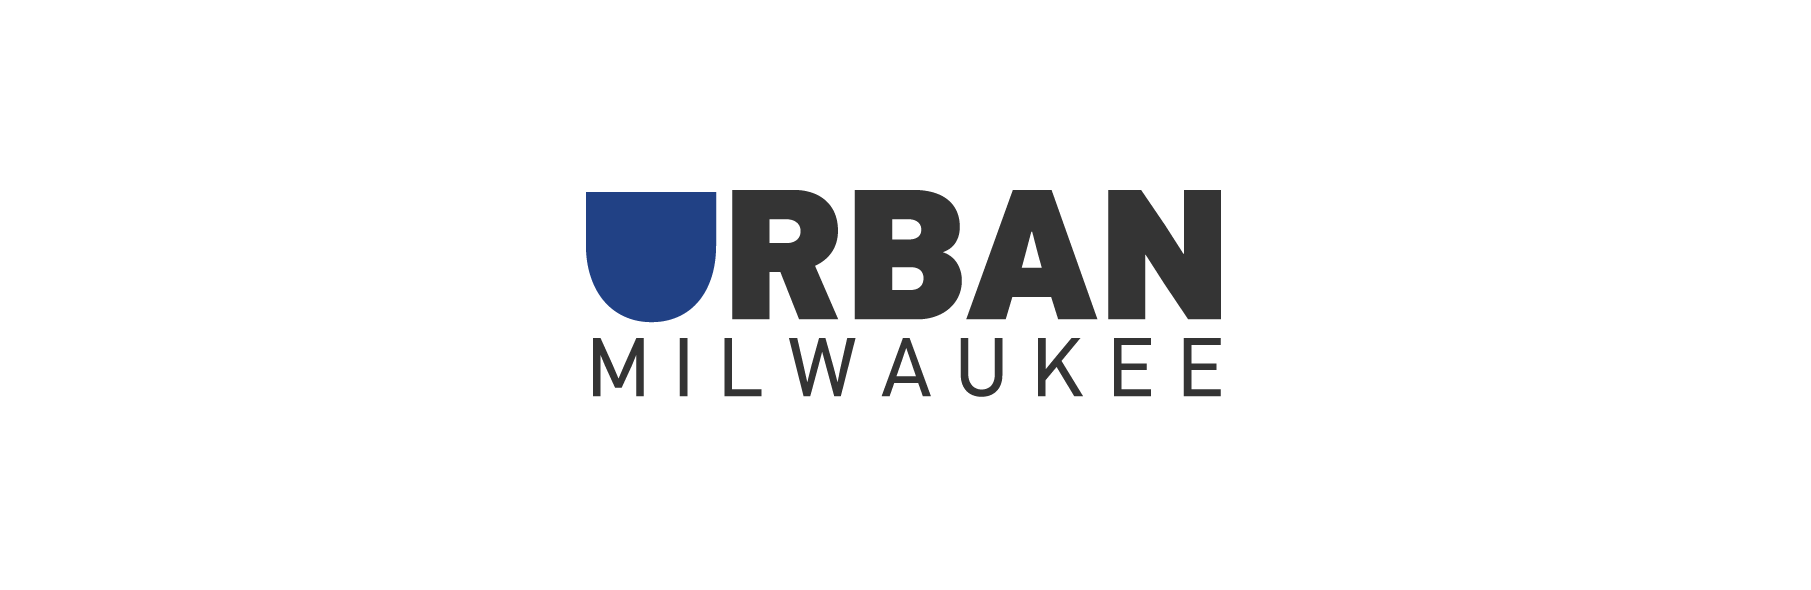 Urban Milwaukee Logo